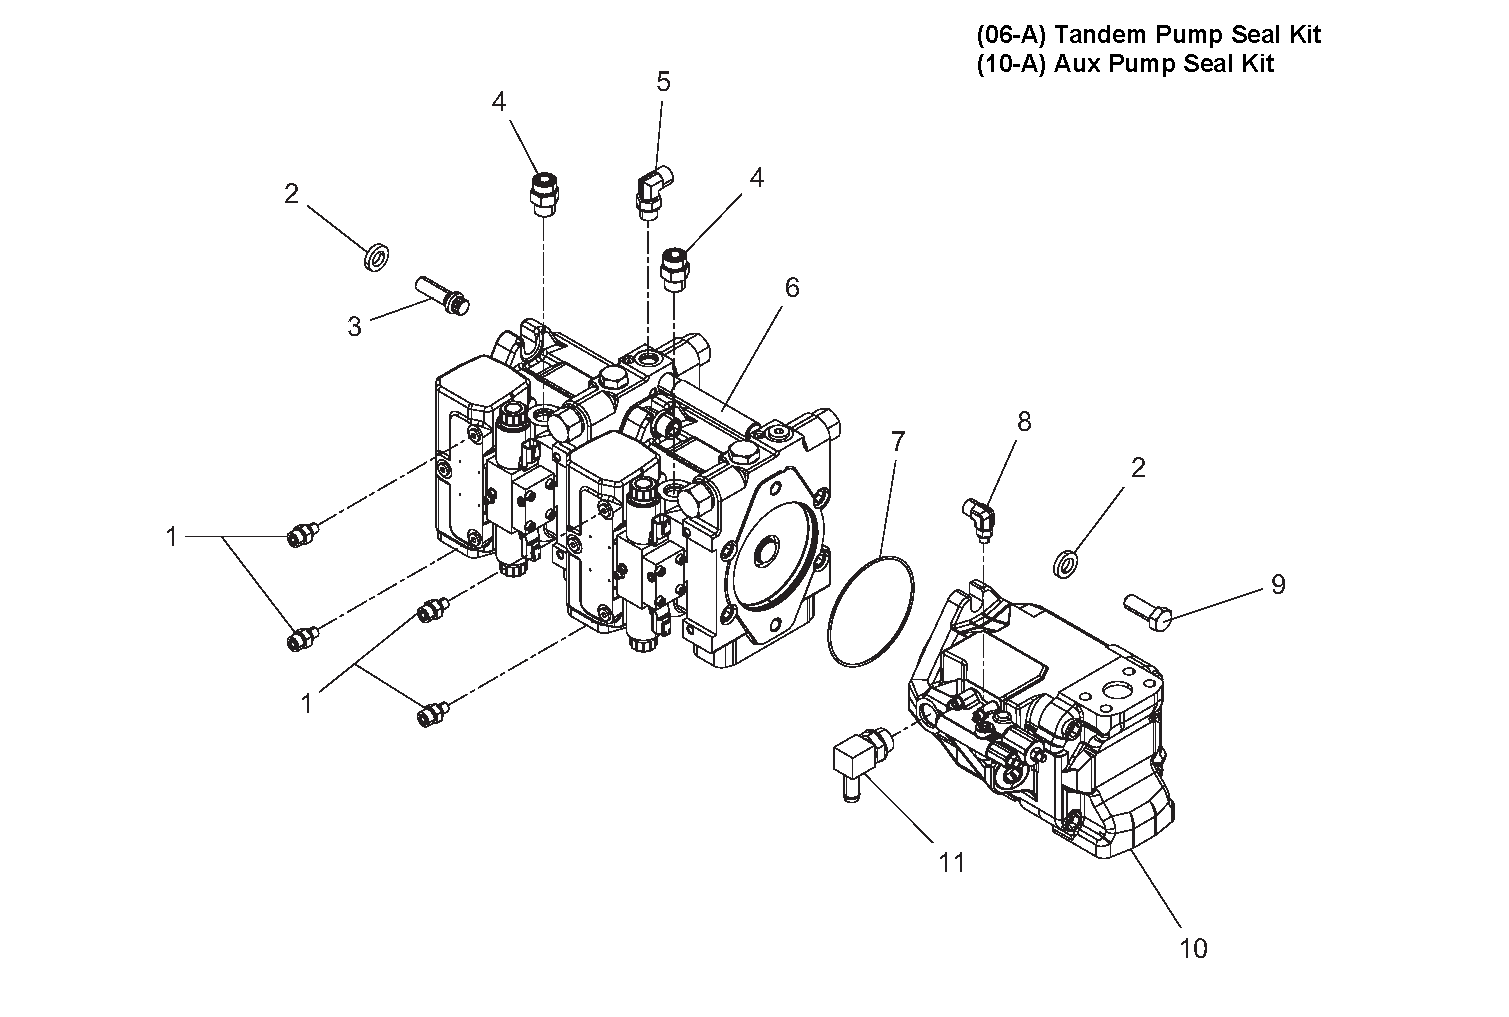 Diagram 3-9A Drive Pump and Auxiliary Pump